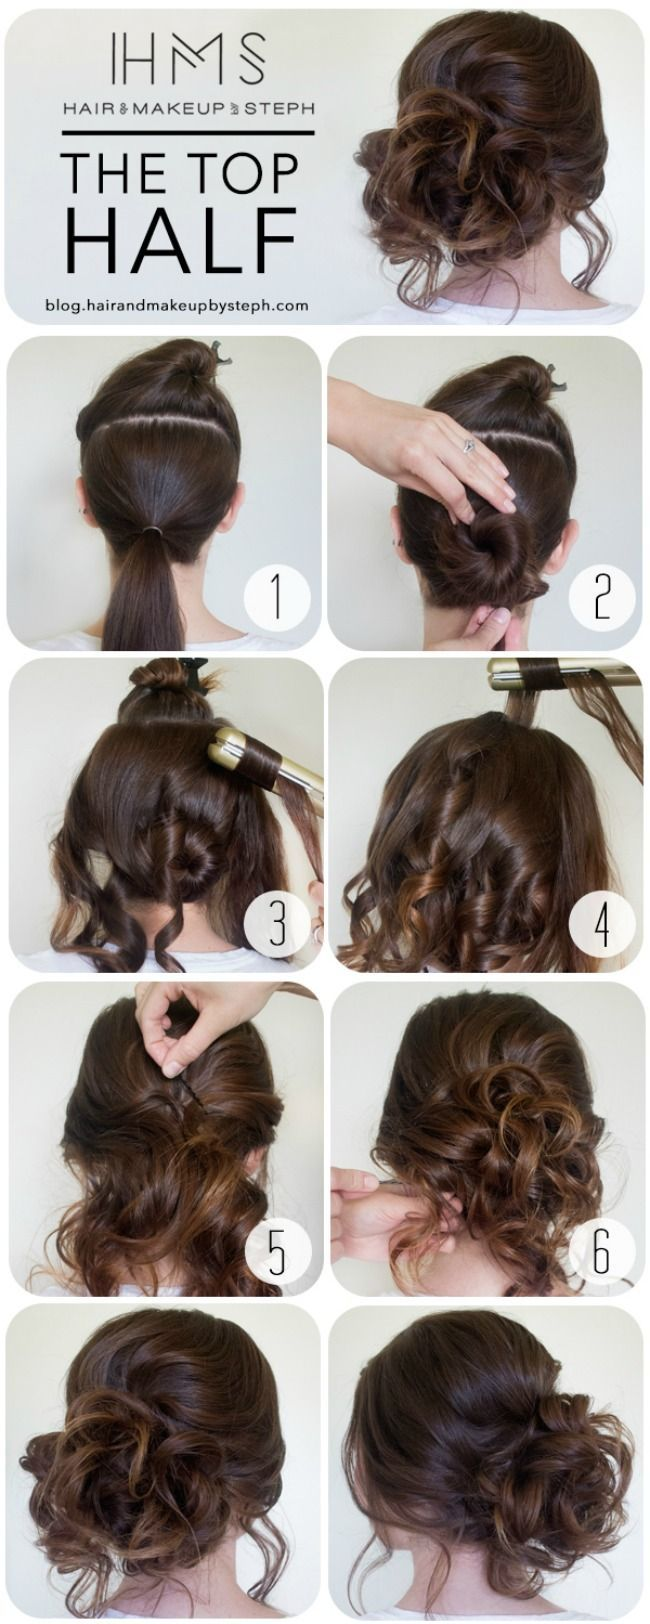 The best easy updo hairstyles easy updo hairstyles easy updo